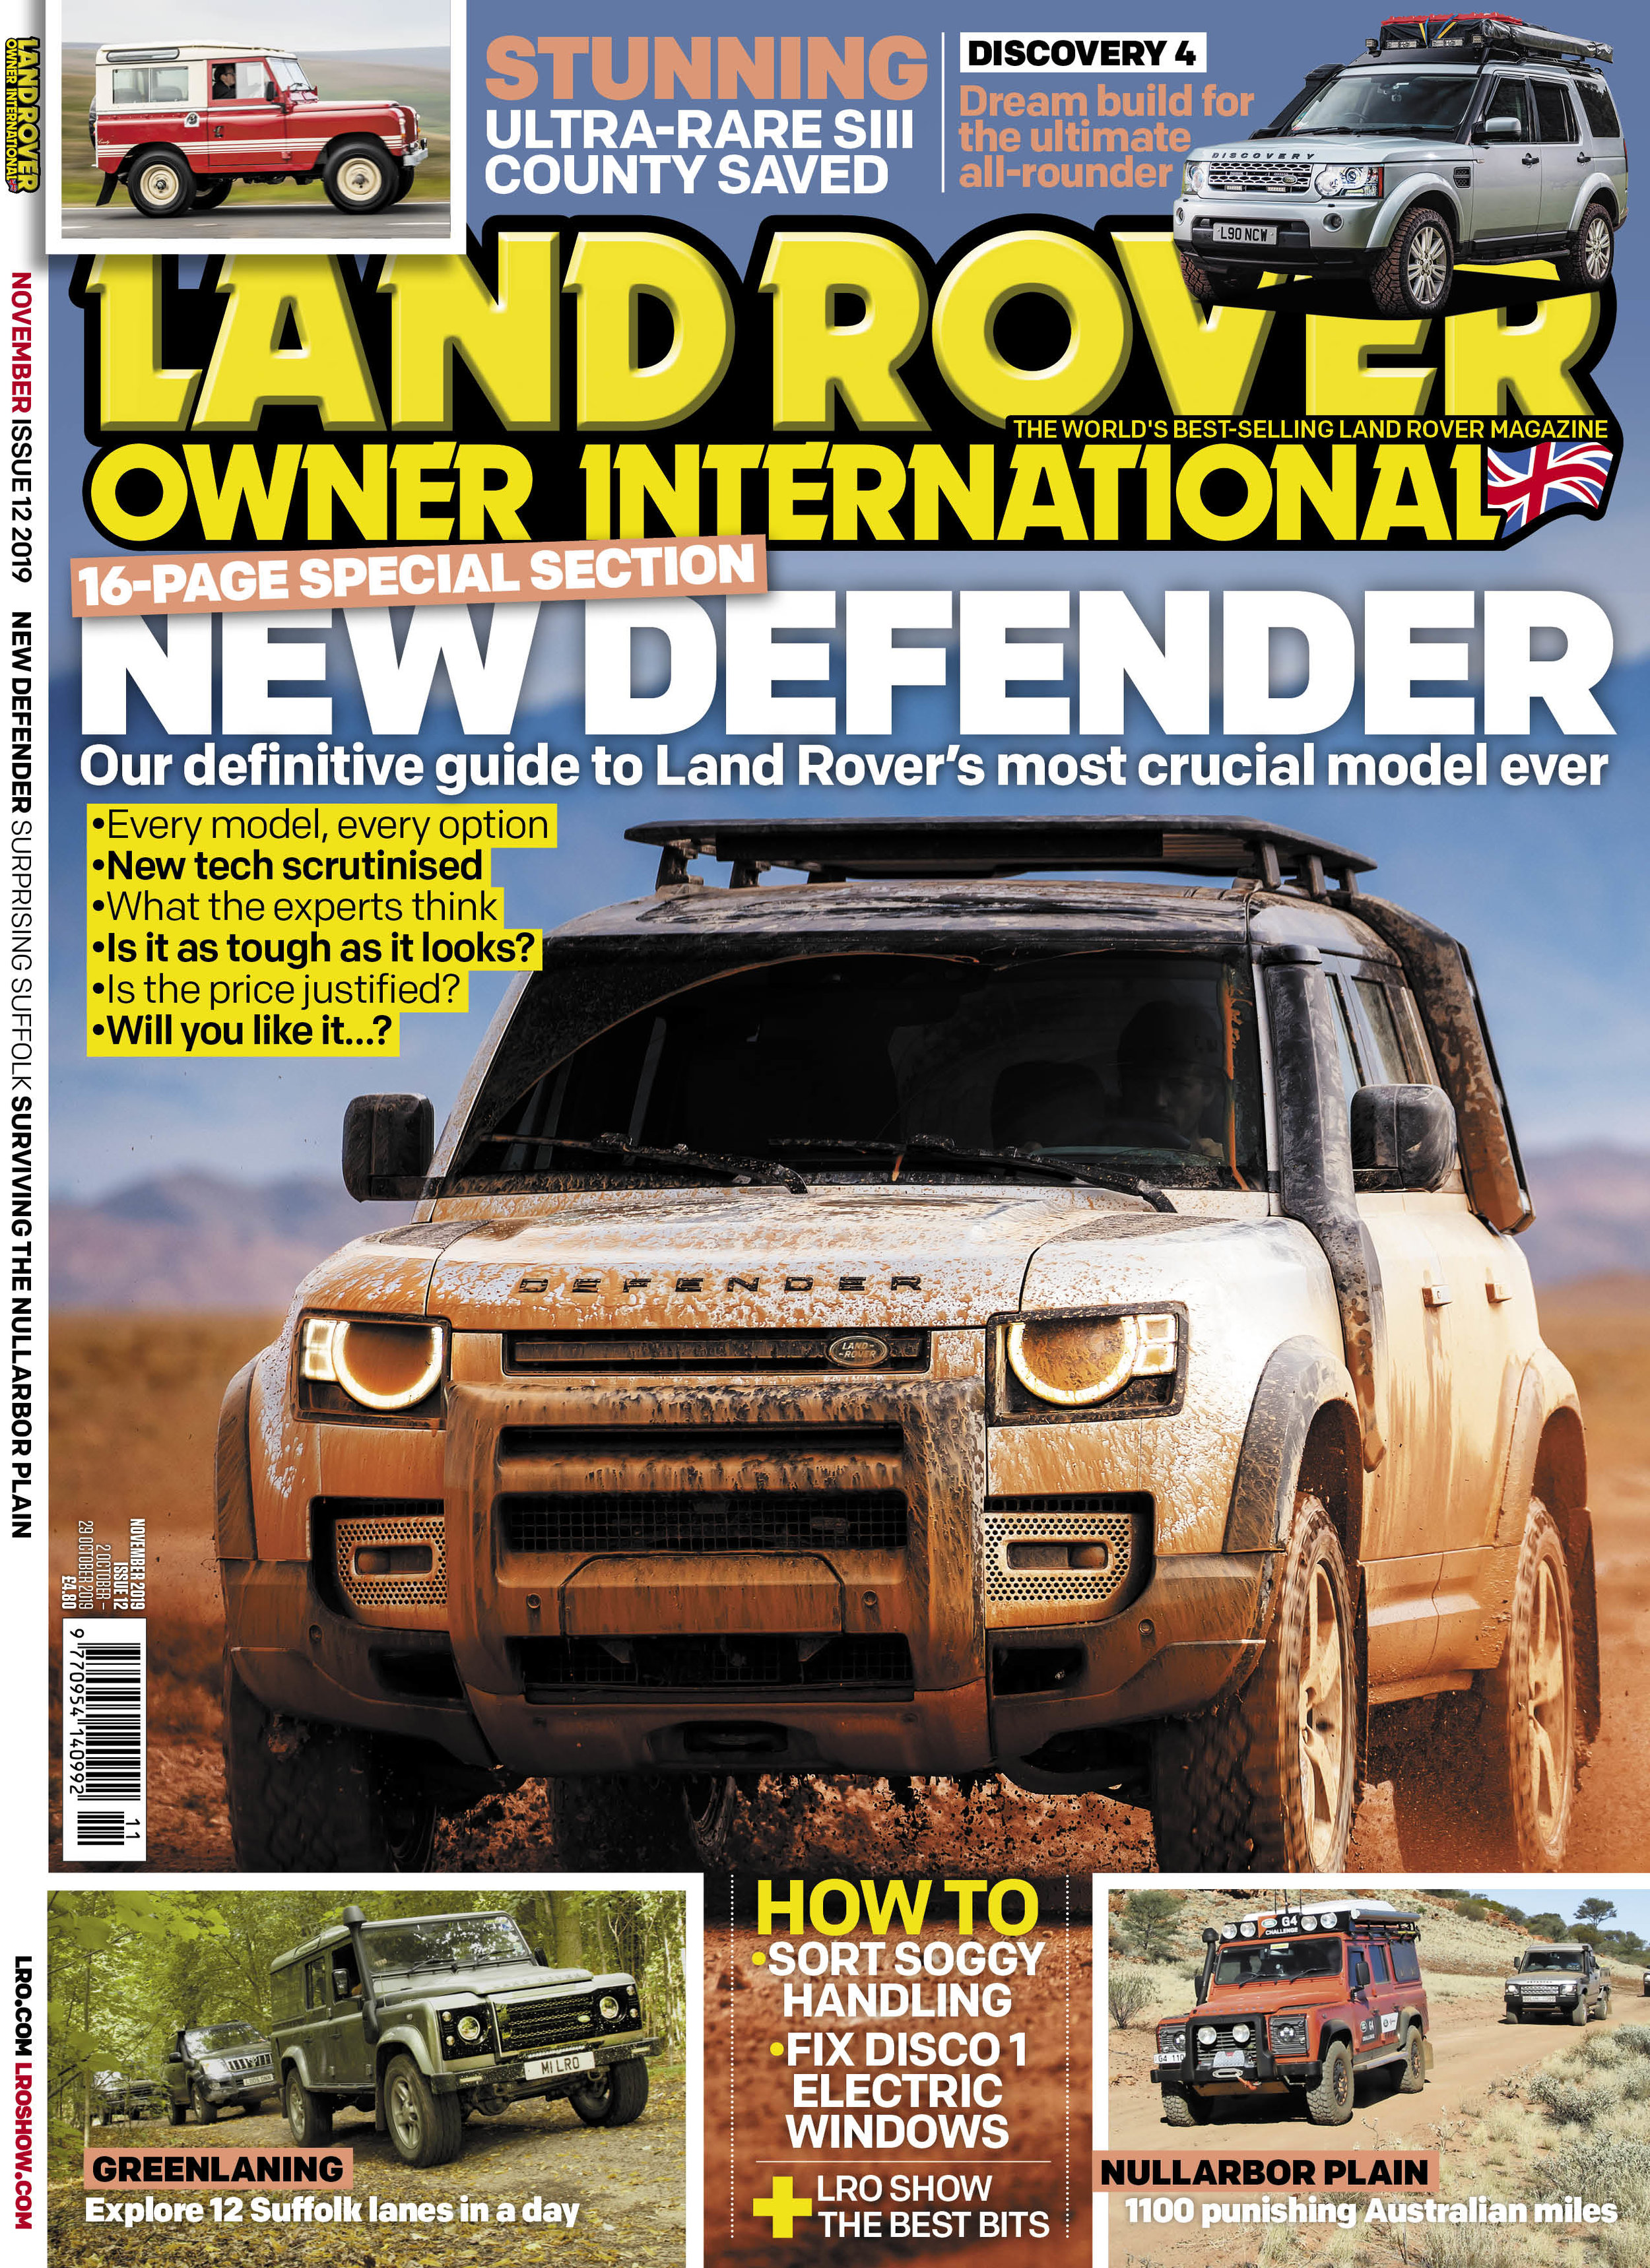 Land Rover Owner November 2019 cover.jpg